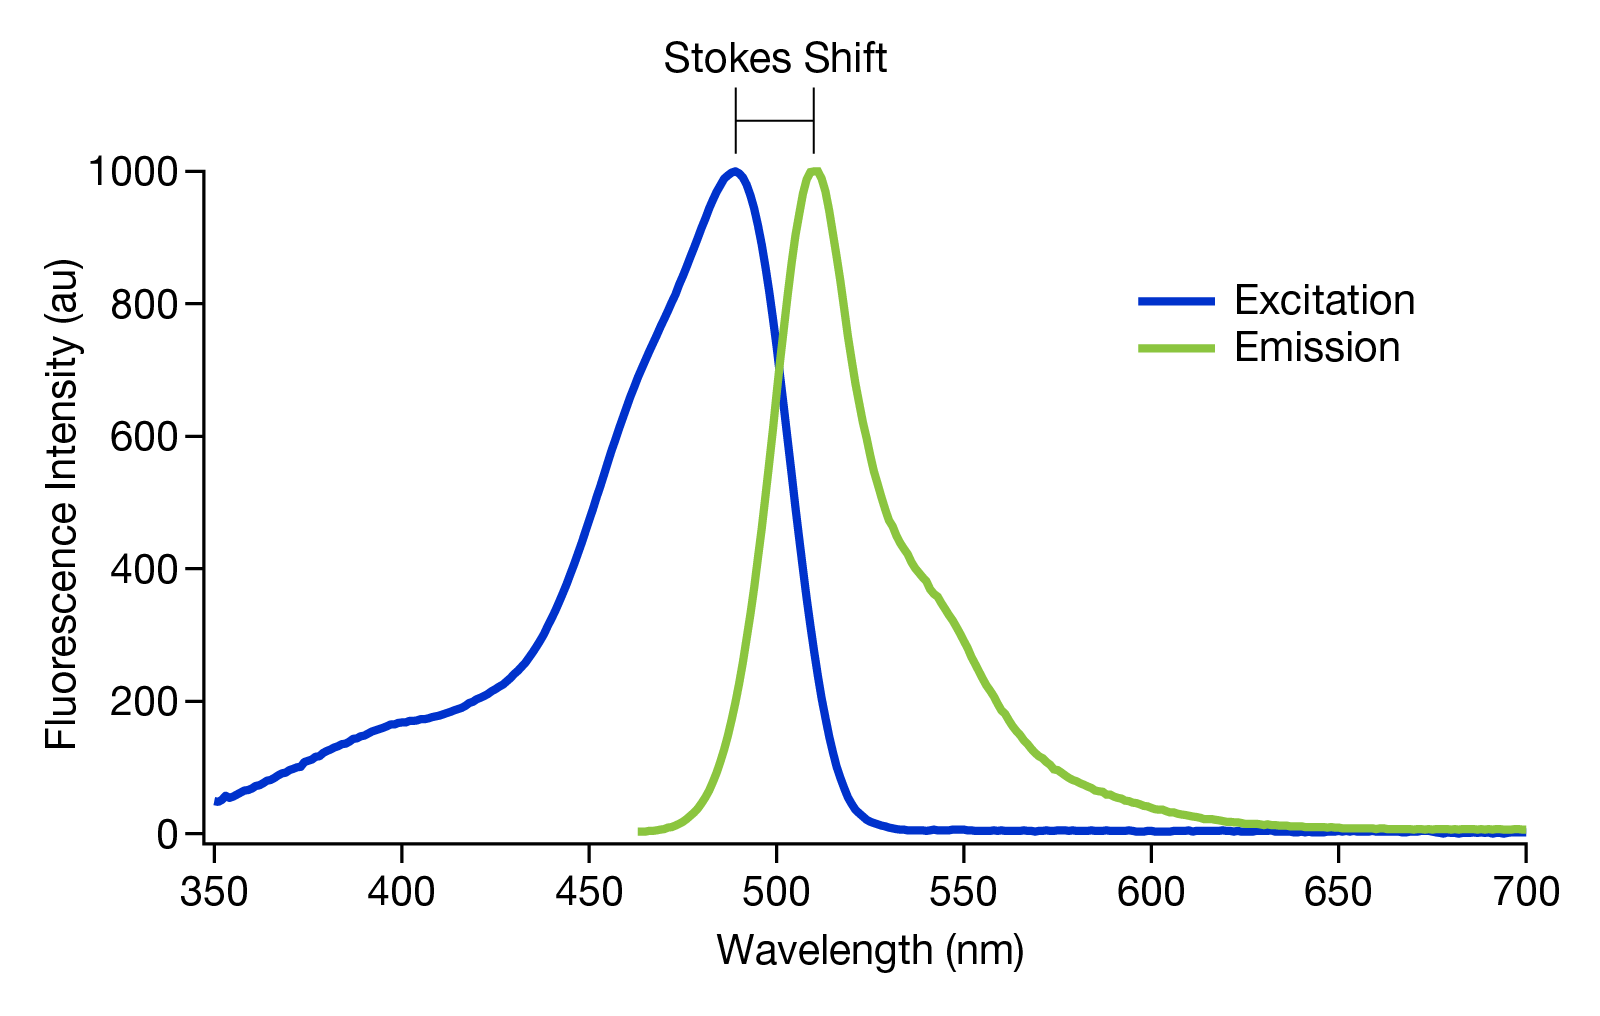 hight resolution of figure 2 a graph showing the stokes shift of gfp